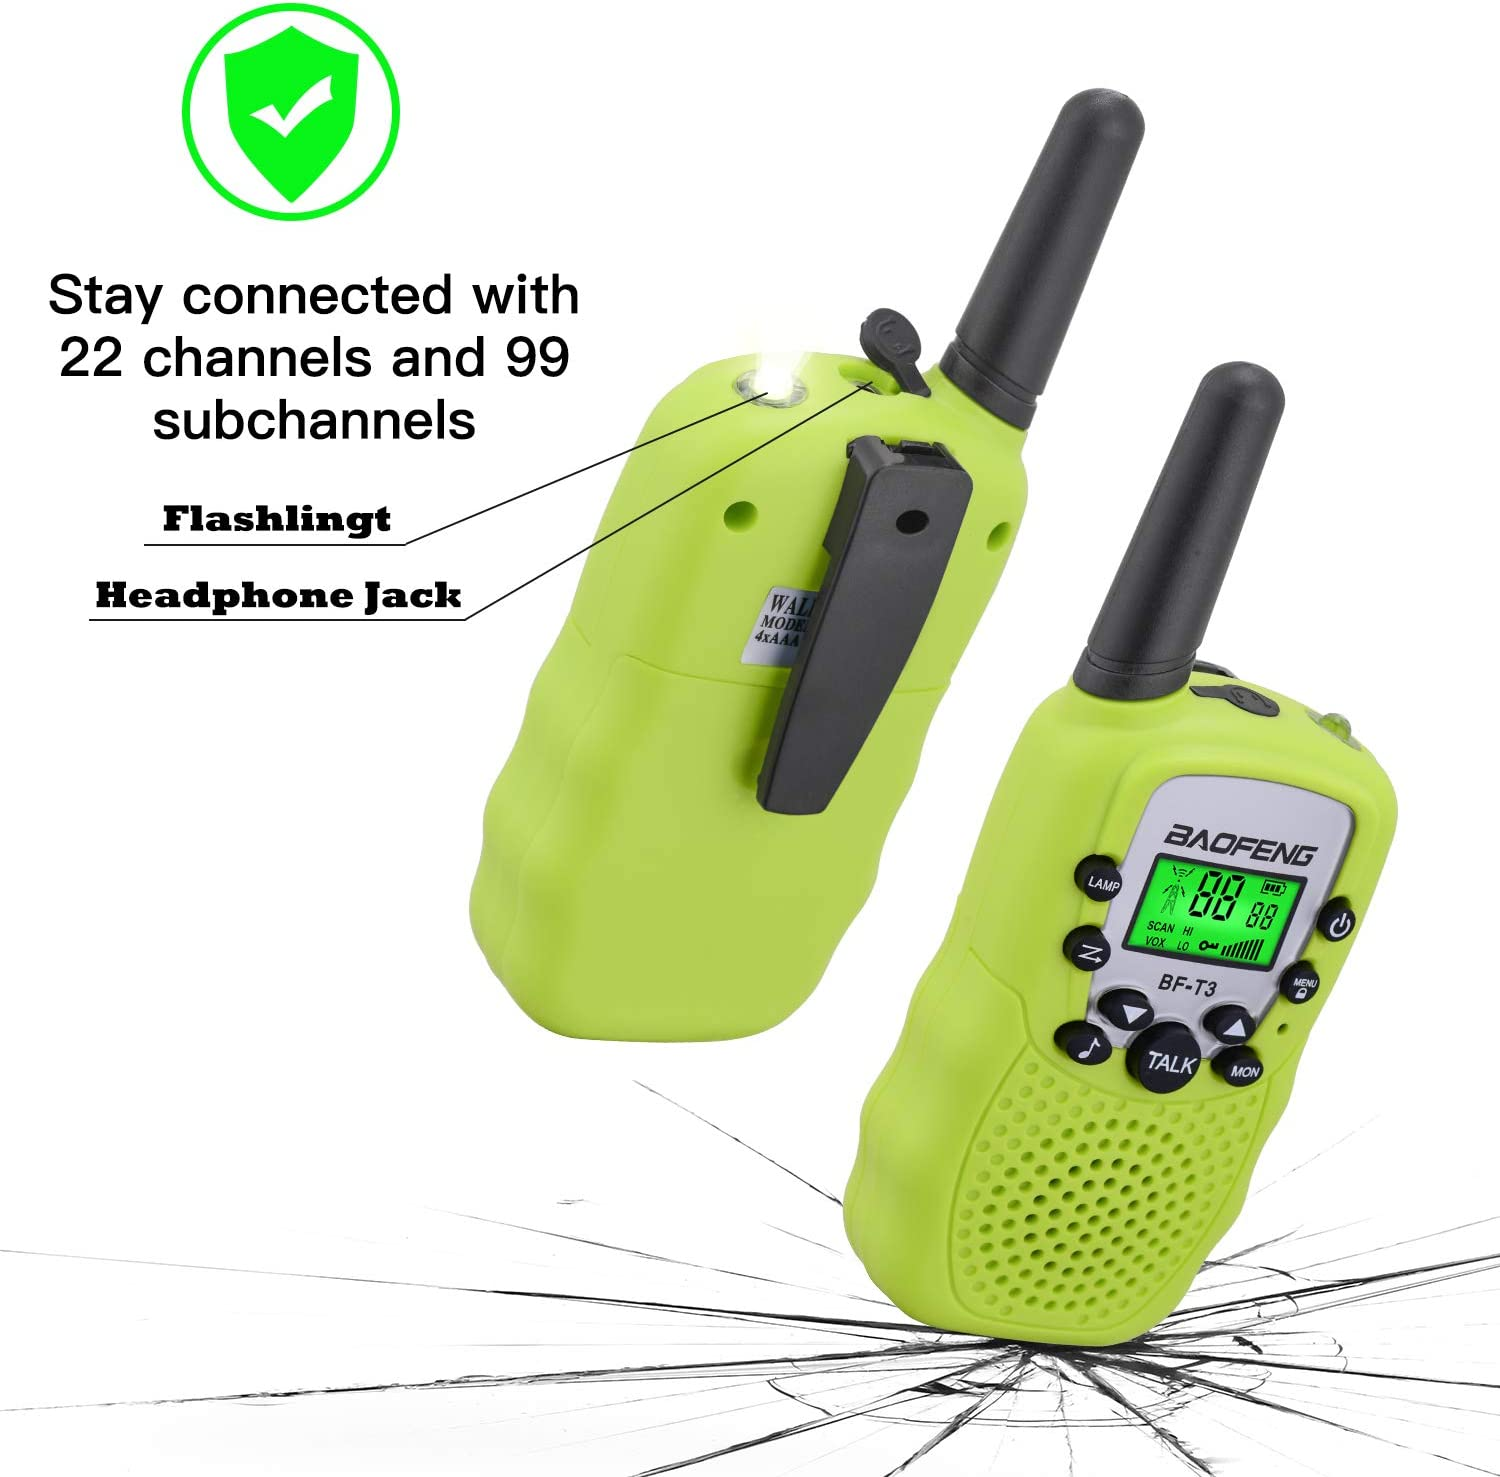 BYBOO Baofeng T3 Kids Walkie Talkies Mini Two Way Radios for Boys Girls Children UHF 462-467MHz Frquency 22 Channels 1 Pair Blue